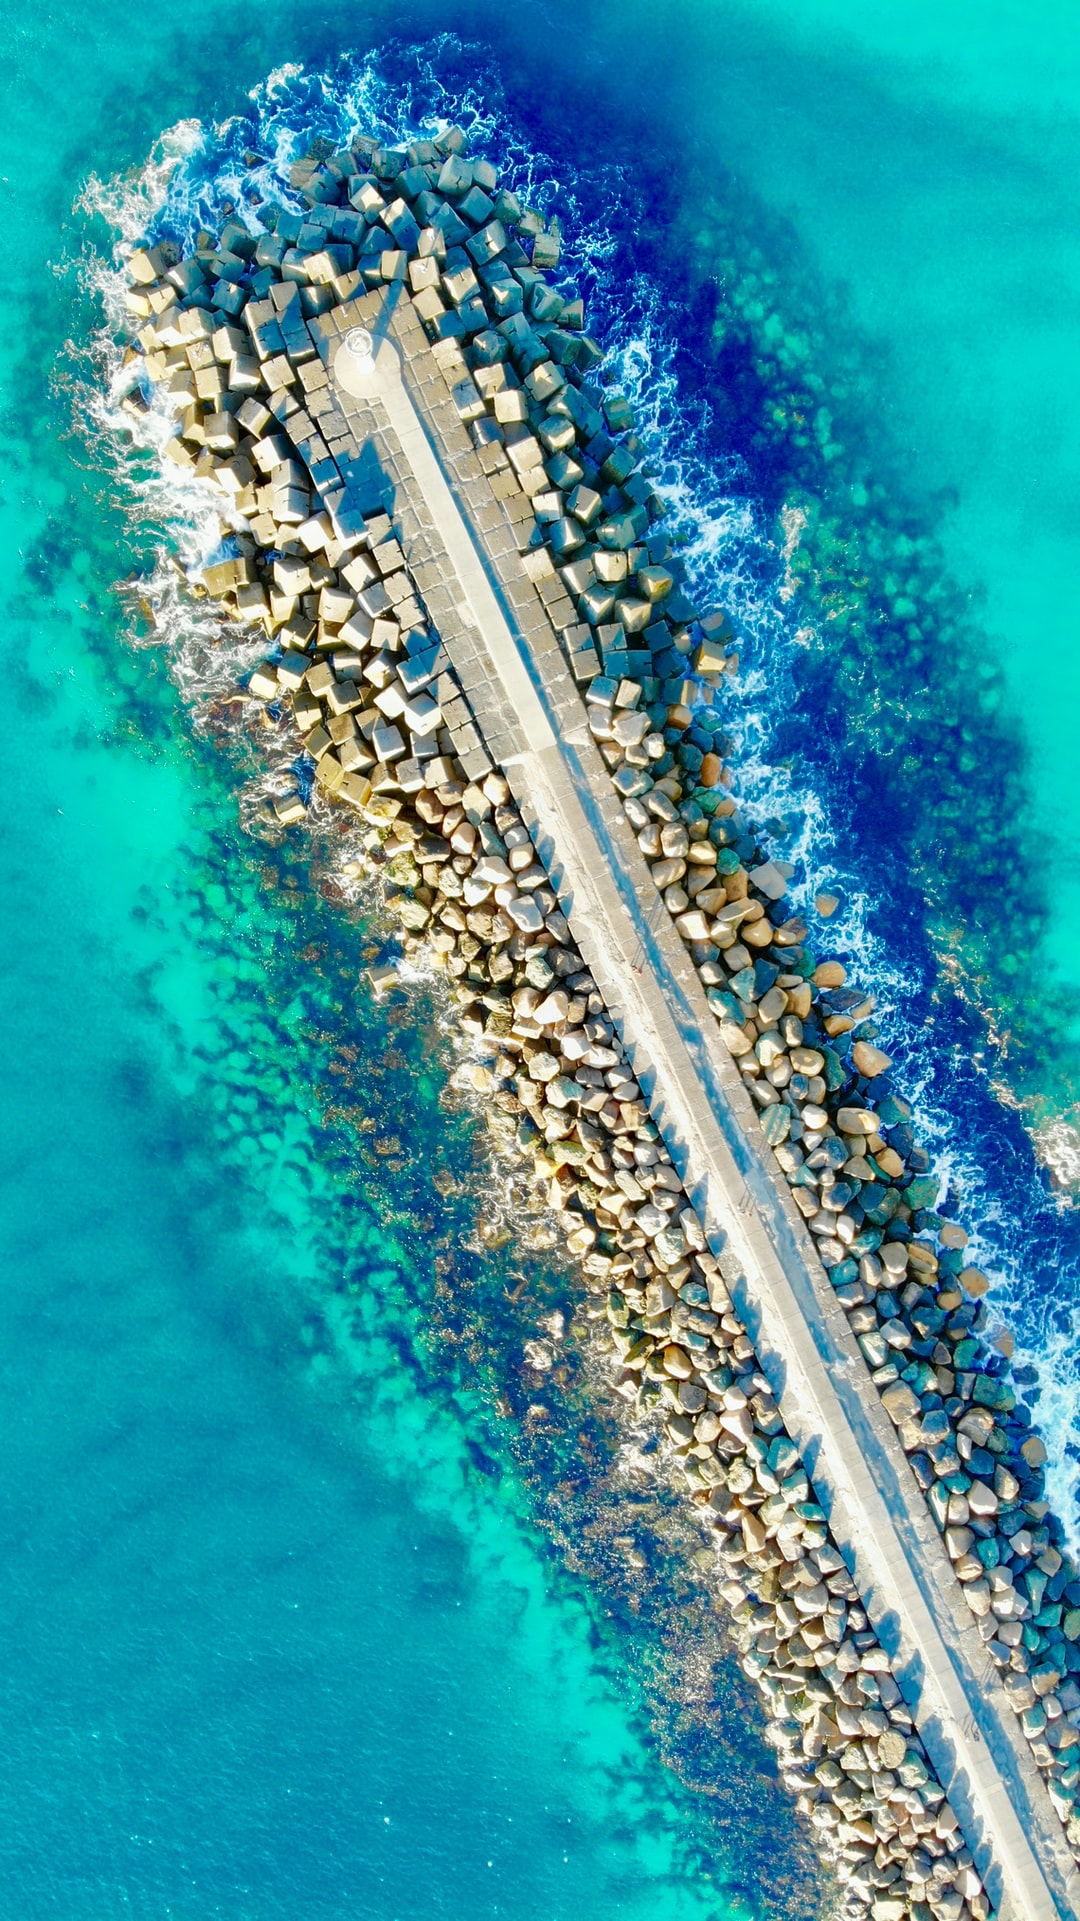 Exciting colours of the Sea